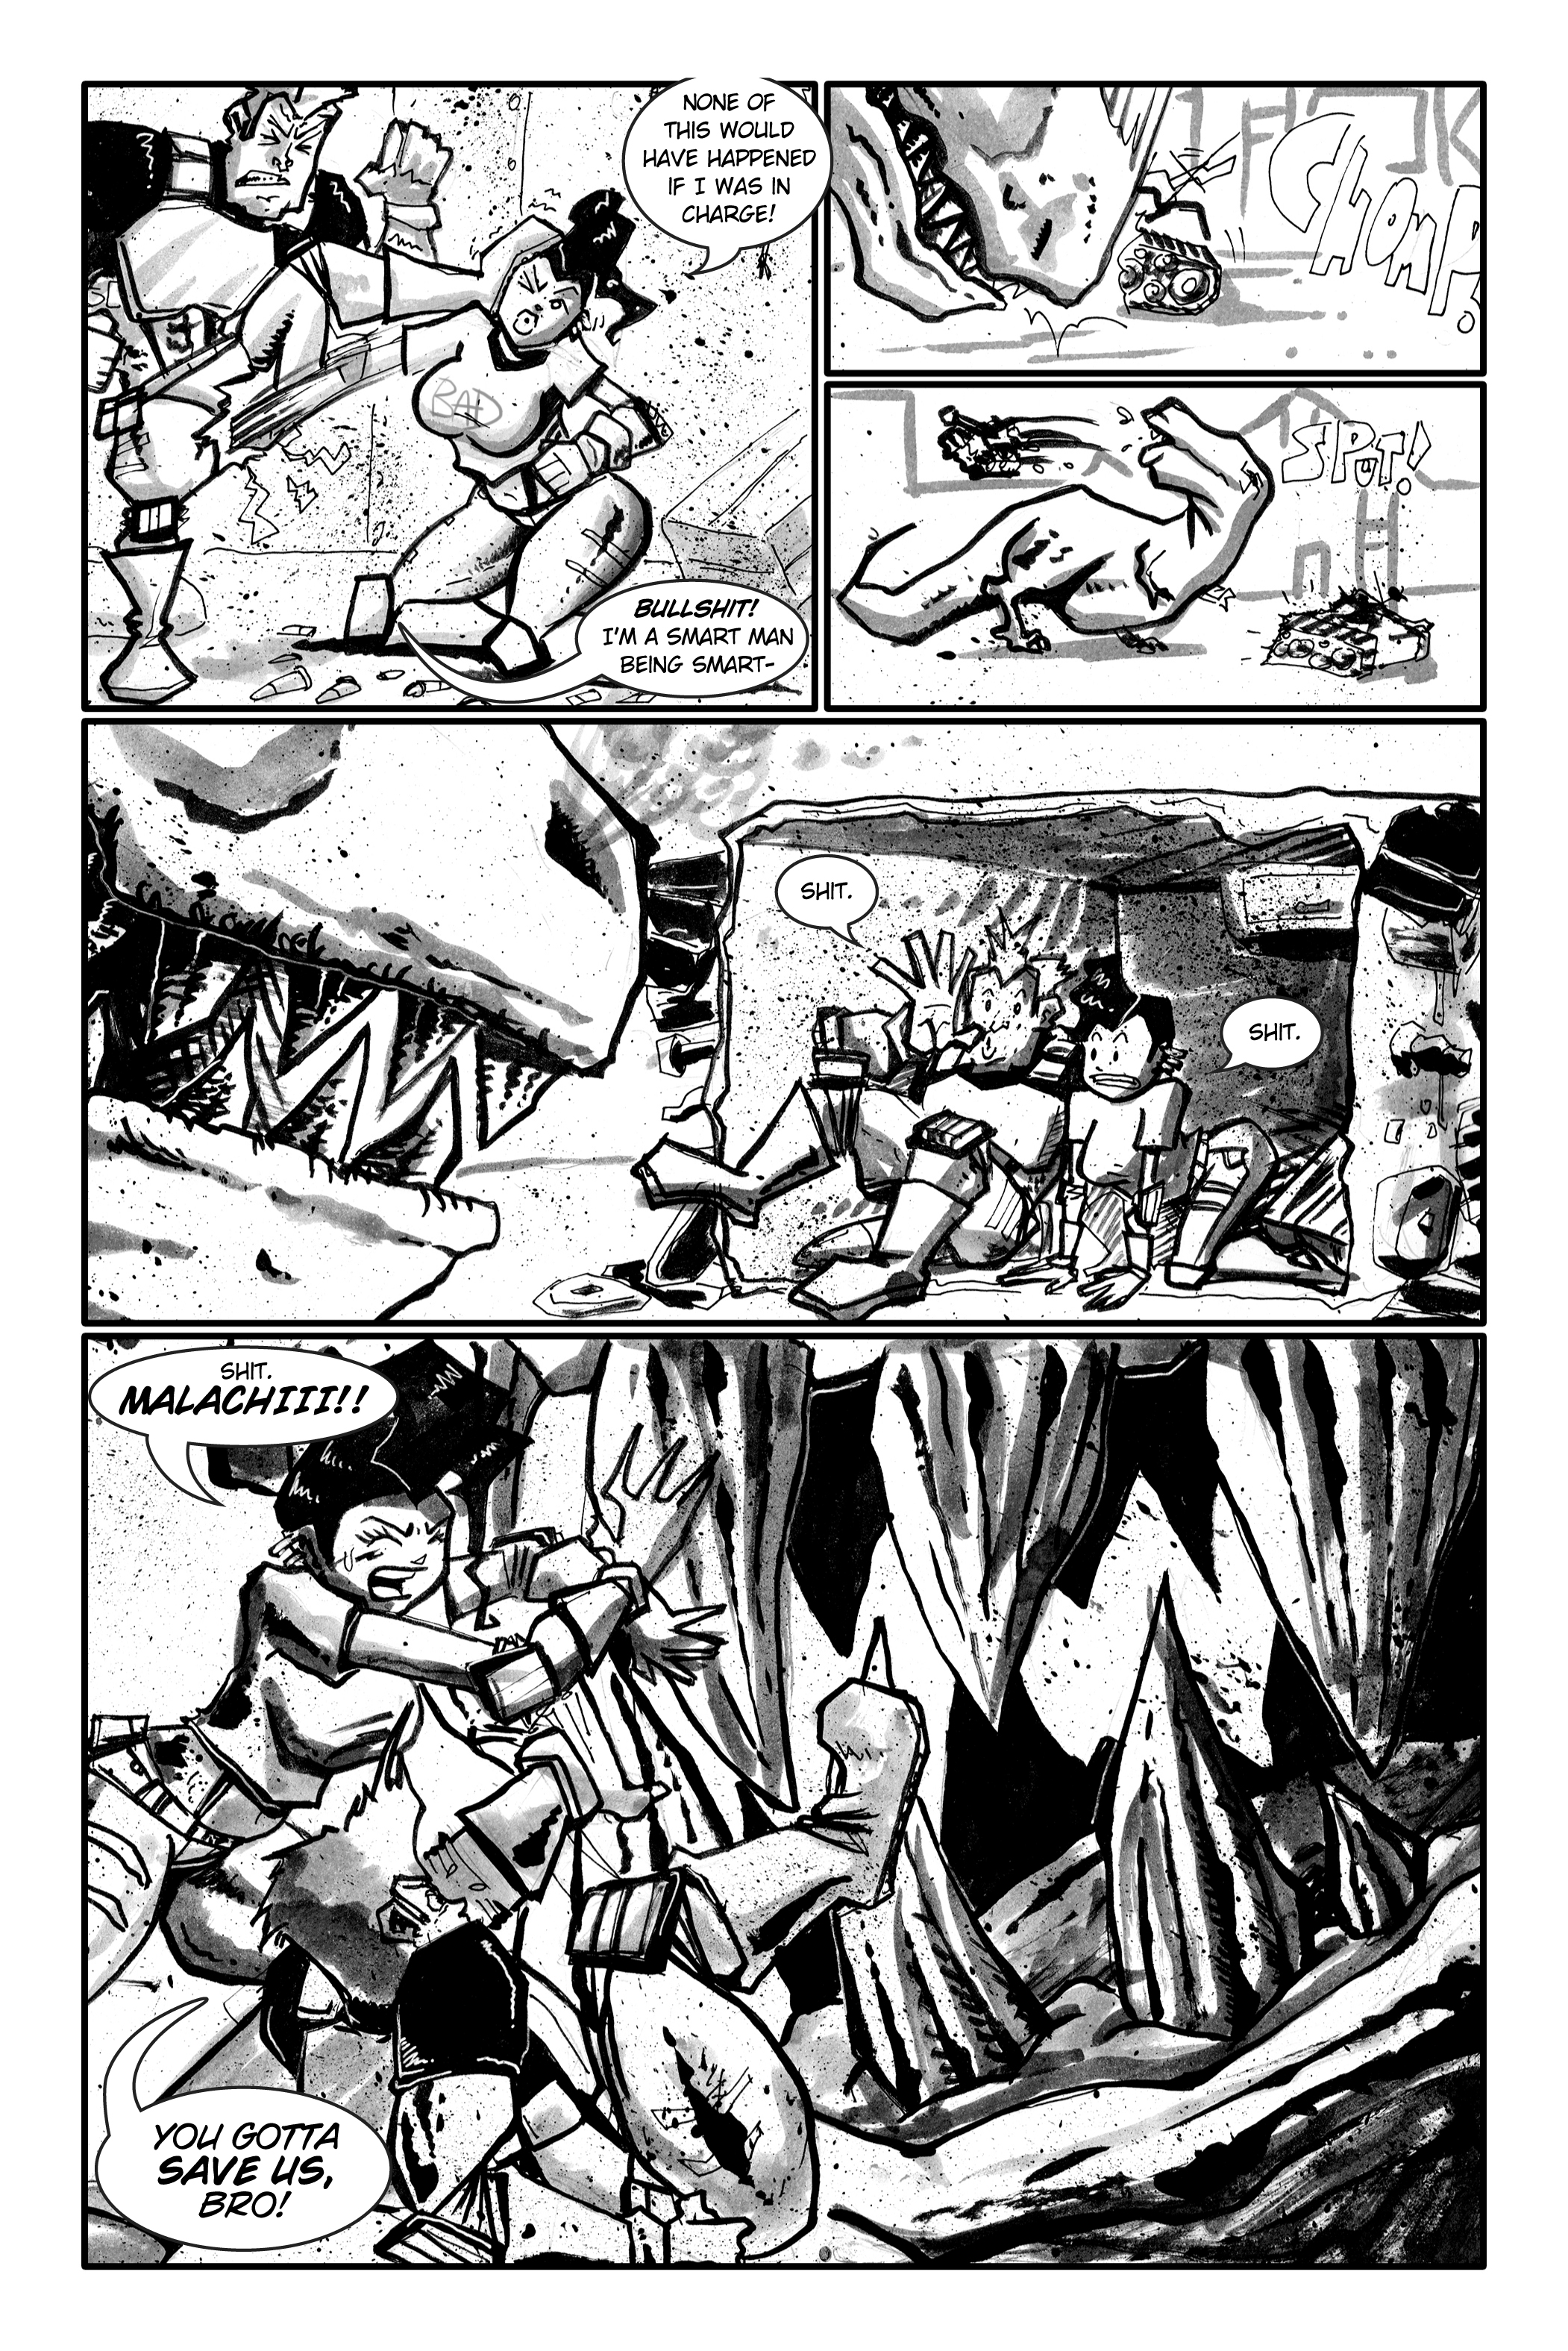 Issue 3, Page 15